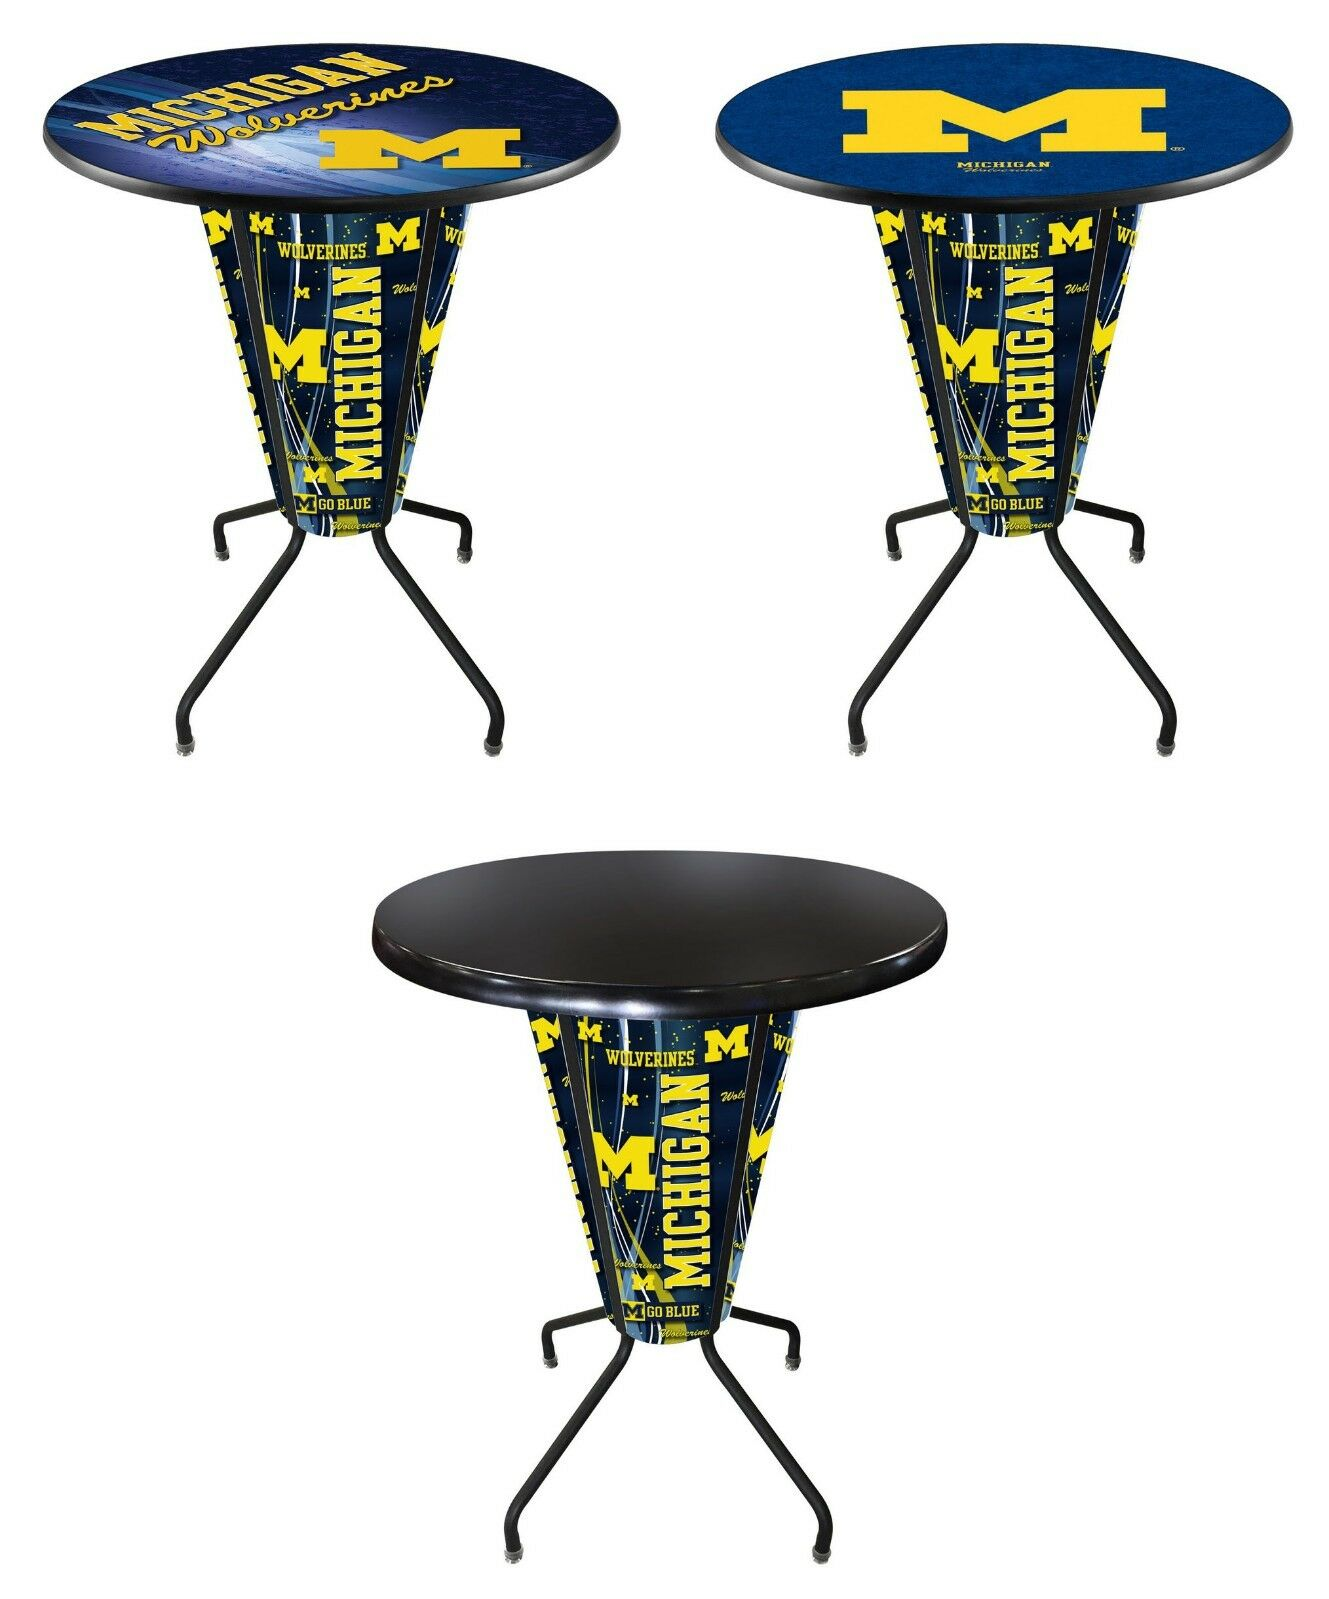 Phenomenal Details About Ncaa Lighted L218 42 Michigan Pub Table Black College Team Logo Gmtry Best Dining Table And Chair Ideas Images Gmtryco